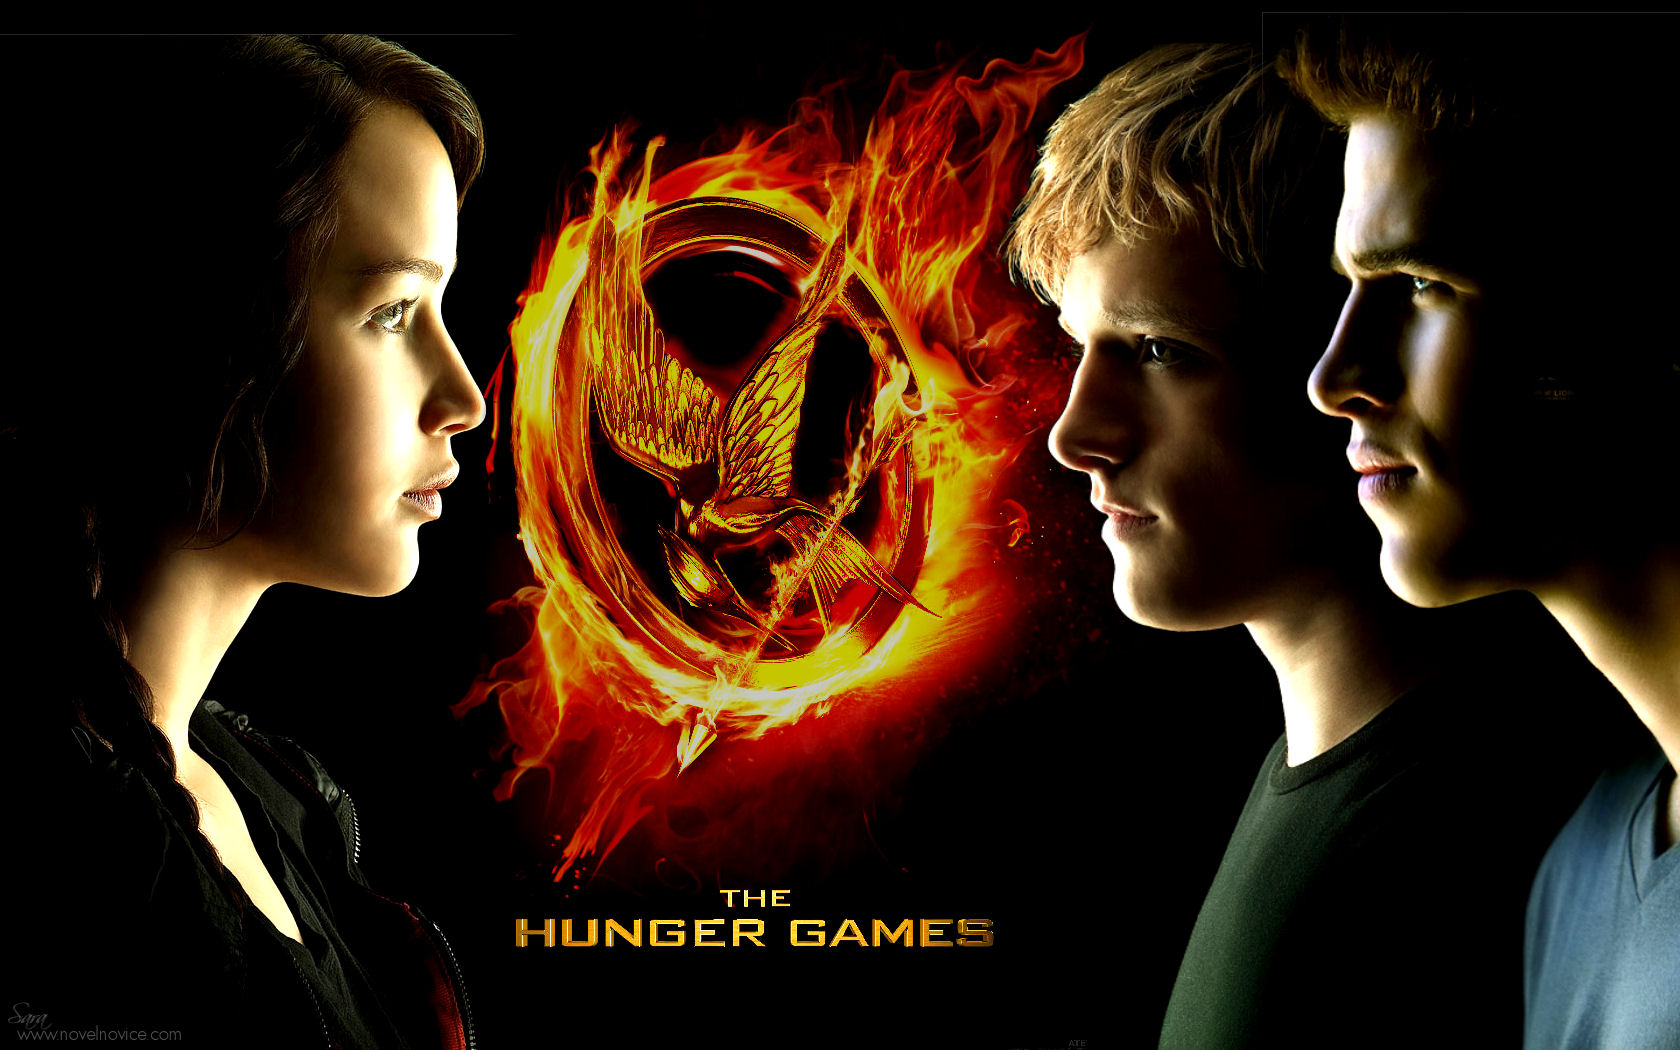 hunger games movie wp trio01 1680x1050